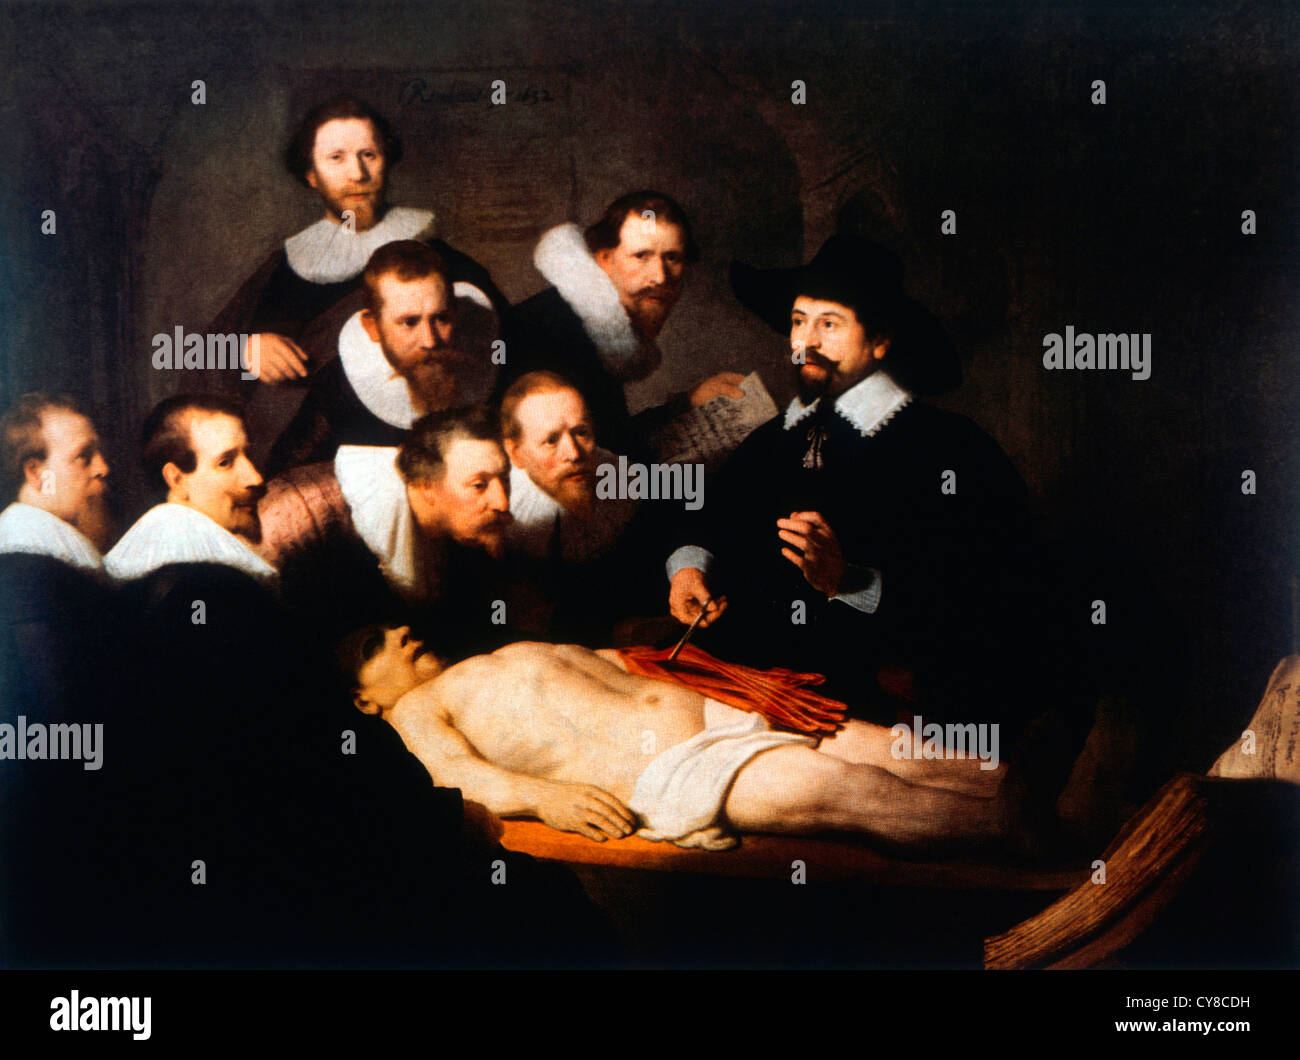 The Anatomy Lesson of Dr. Tulp, Painting by Rembrandt, 1632 - Stock Image